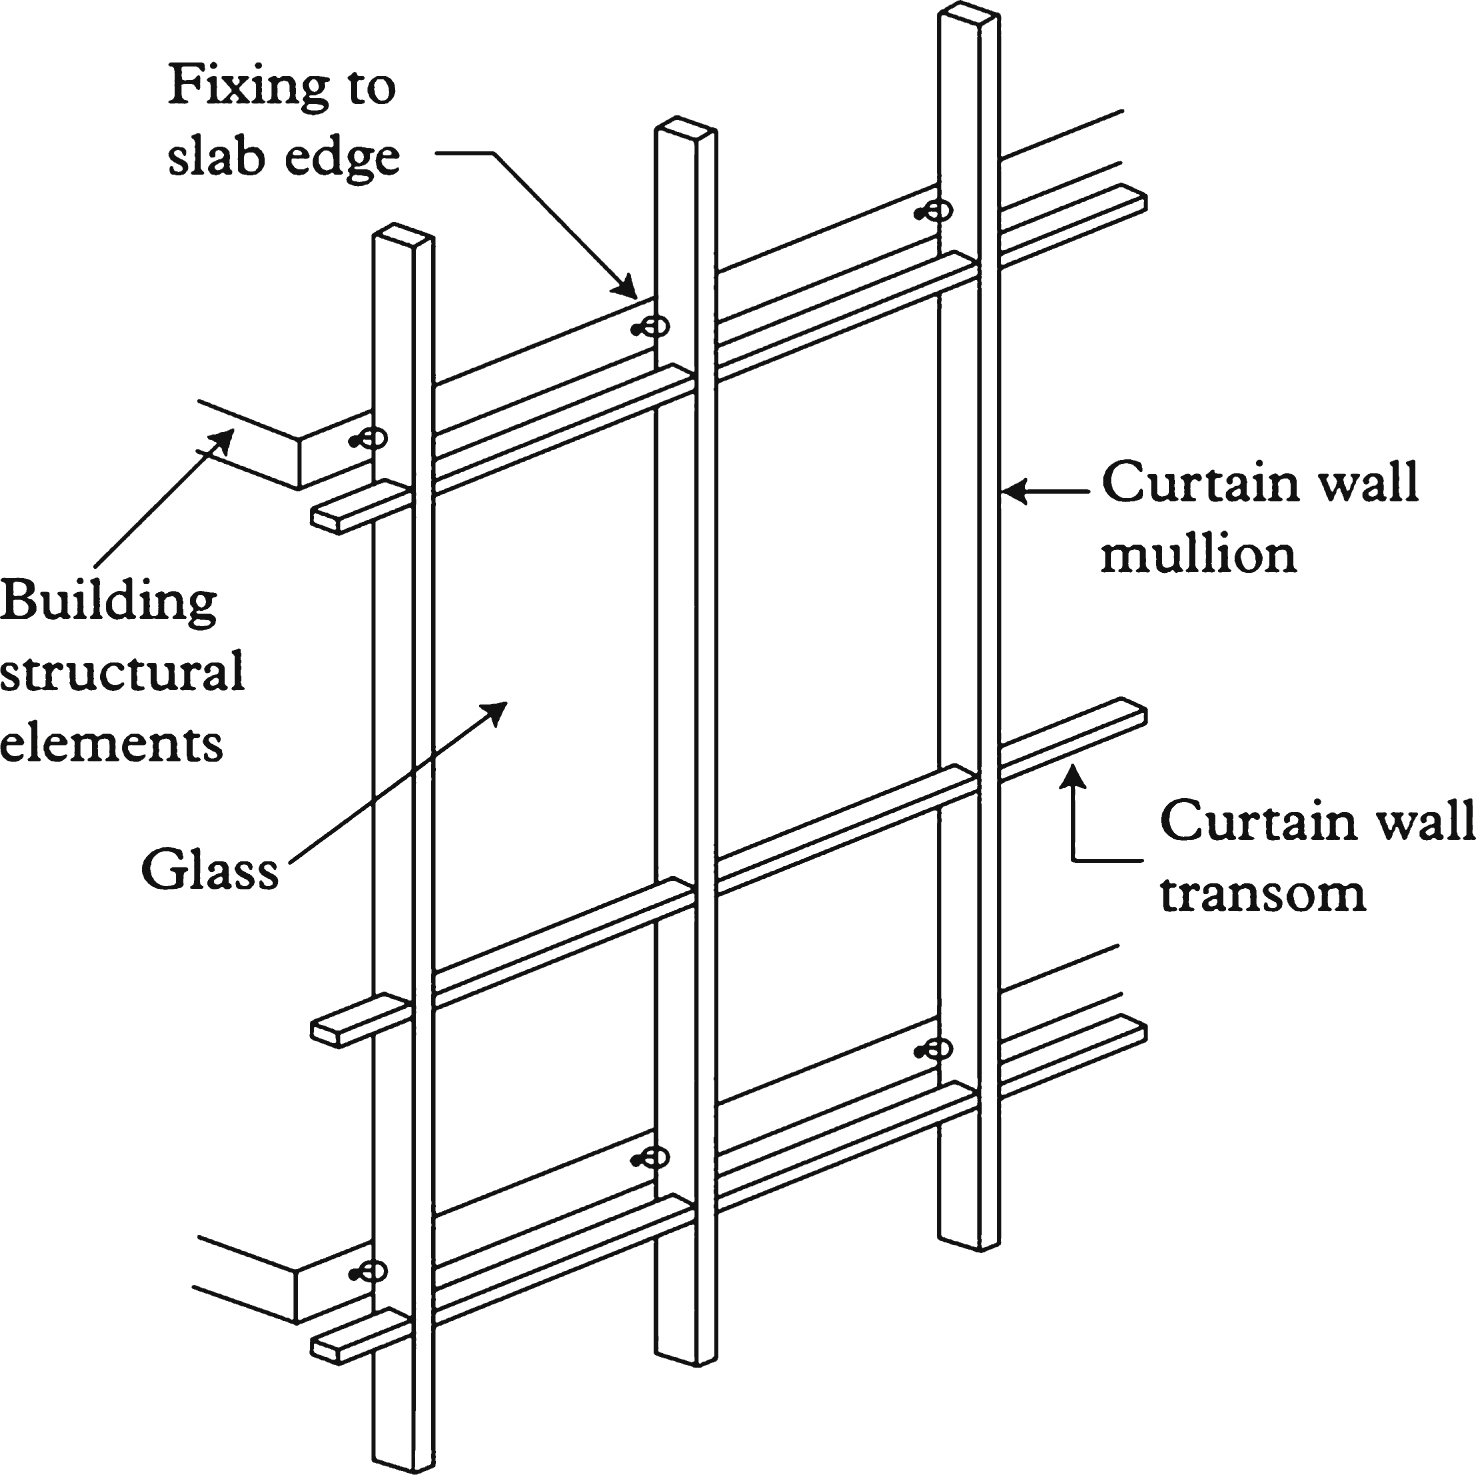 facade systems at the early design